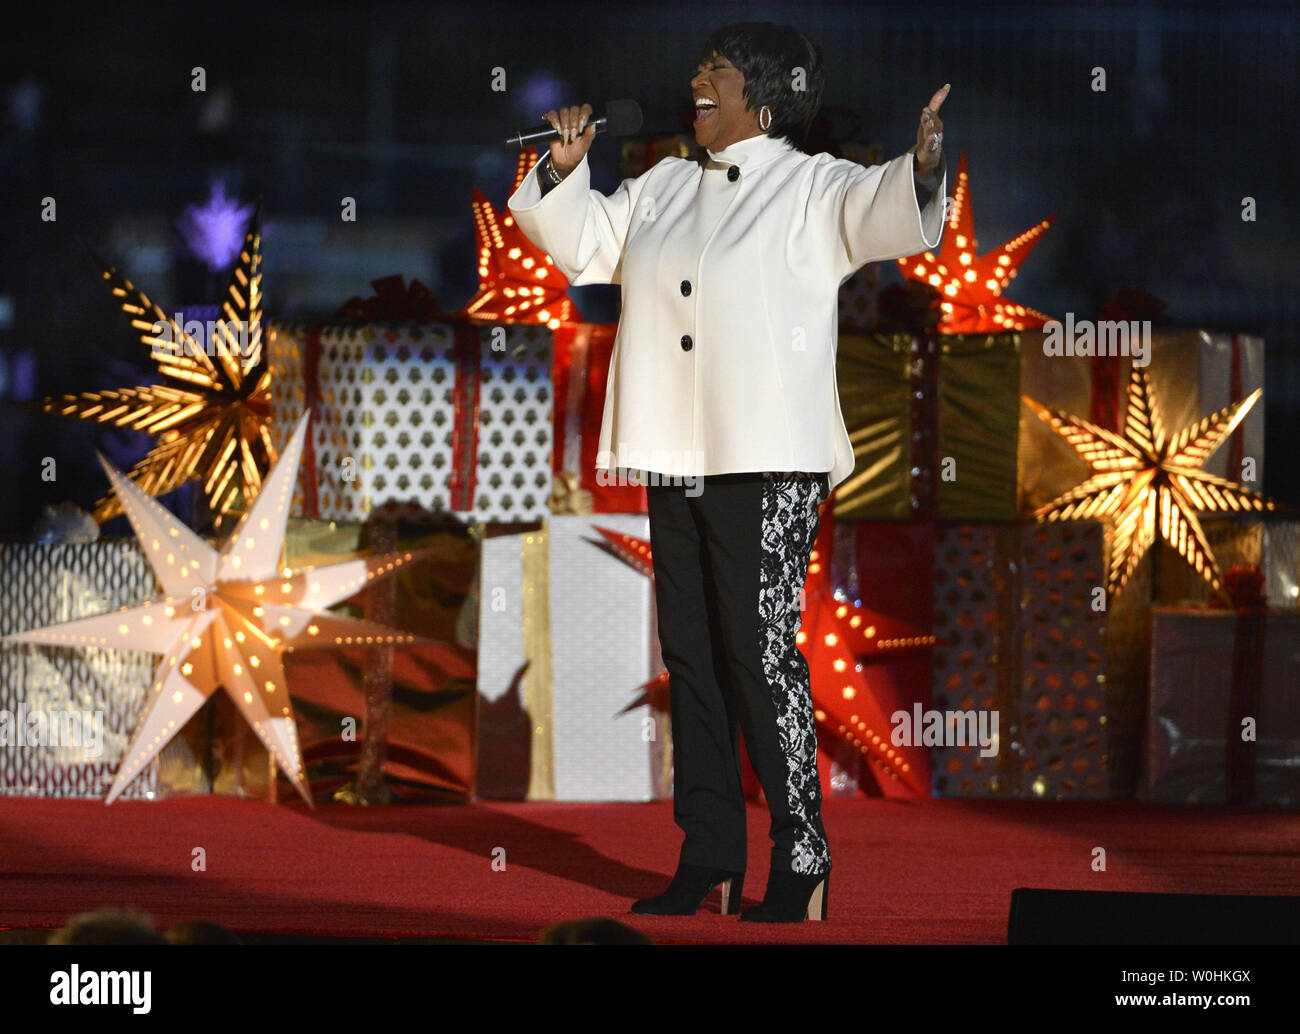 Patti Labelle This Christmas.Grammy Award Winning Singer Patti Labelle Performs On Stage